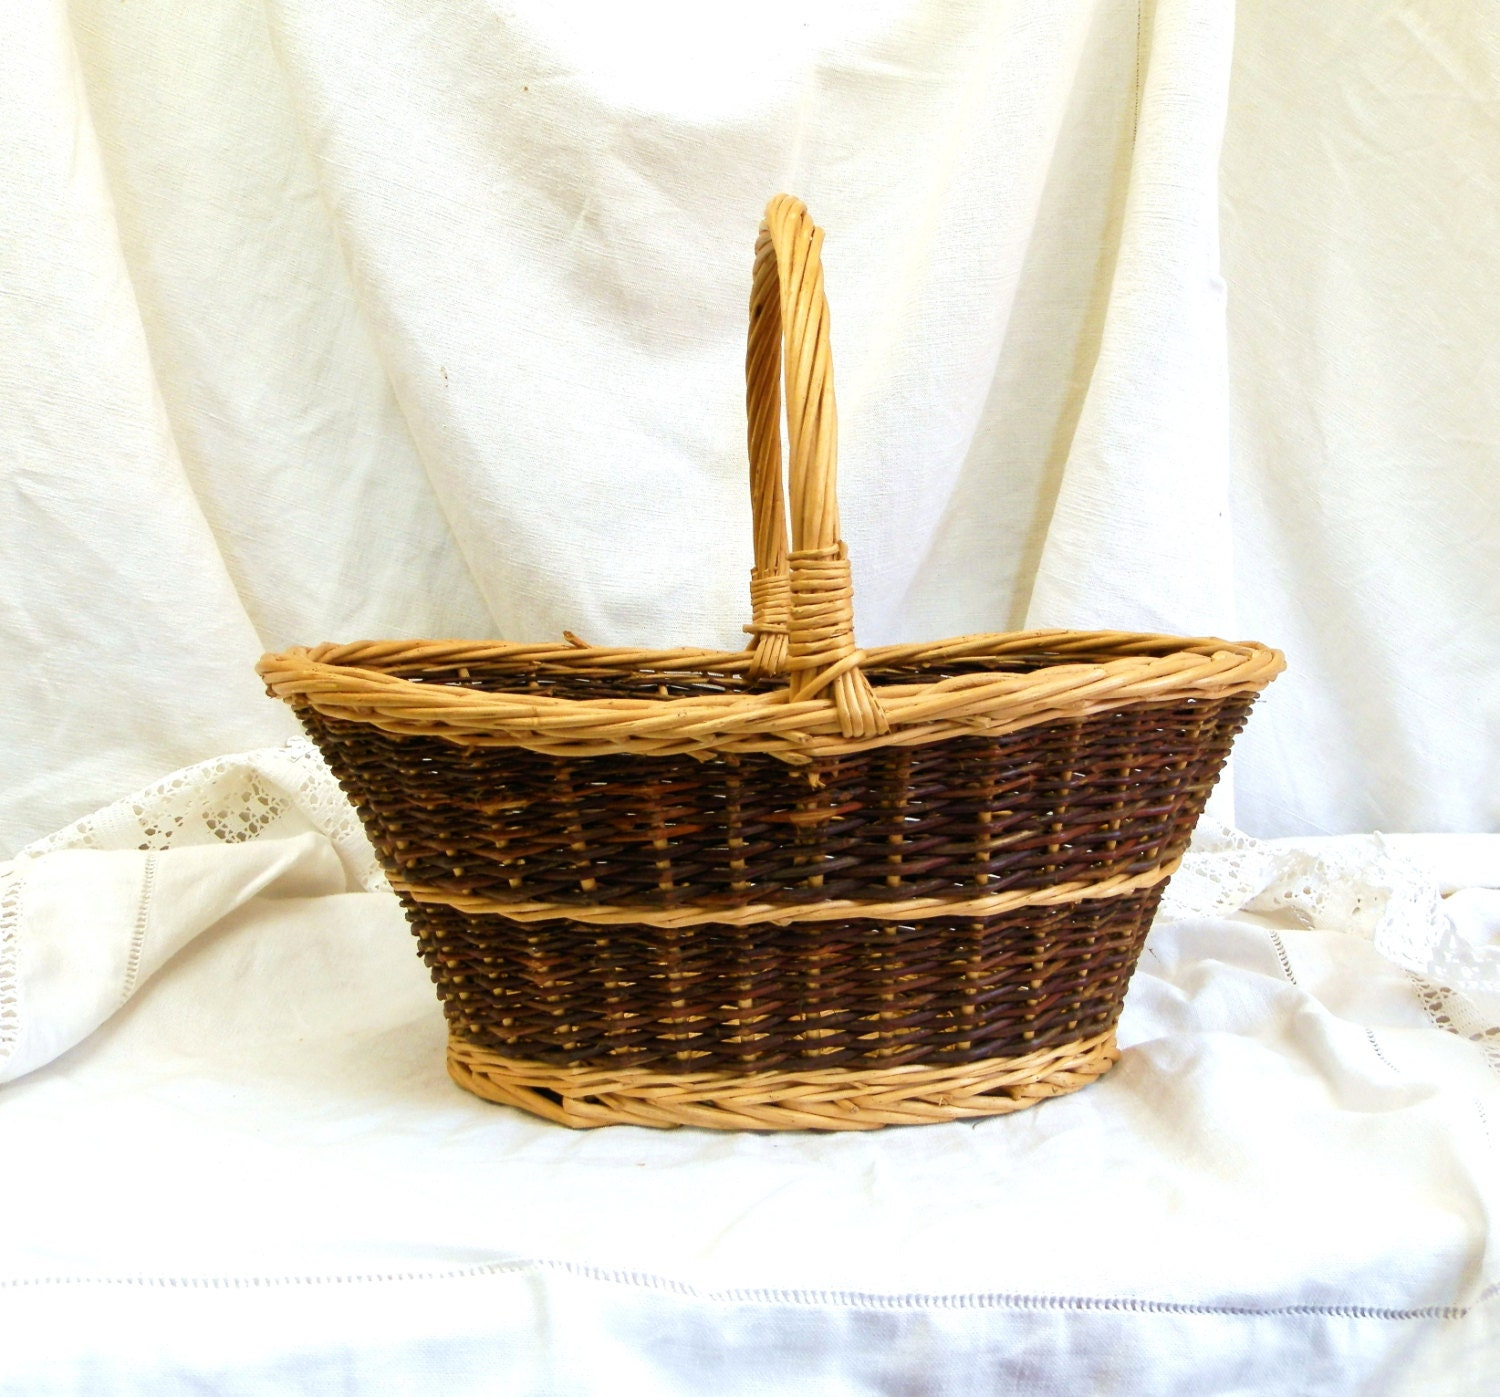 Small Vintage French Woven Wicker Willow Rustic Basket Primitive Country Cottage Farmhouse Decor 2 Tone Colored Picnic Wooden Basket